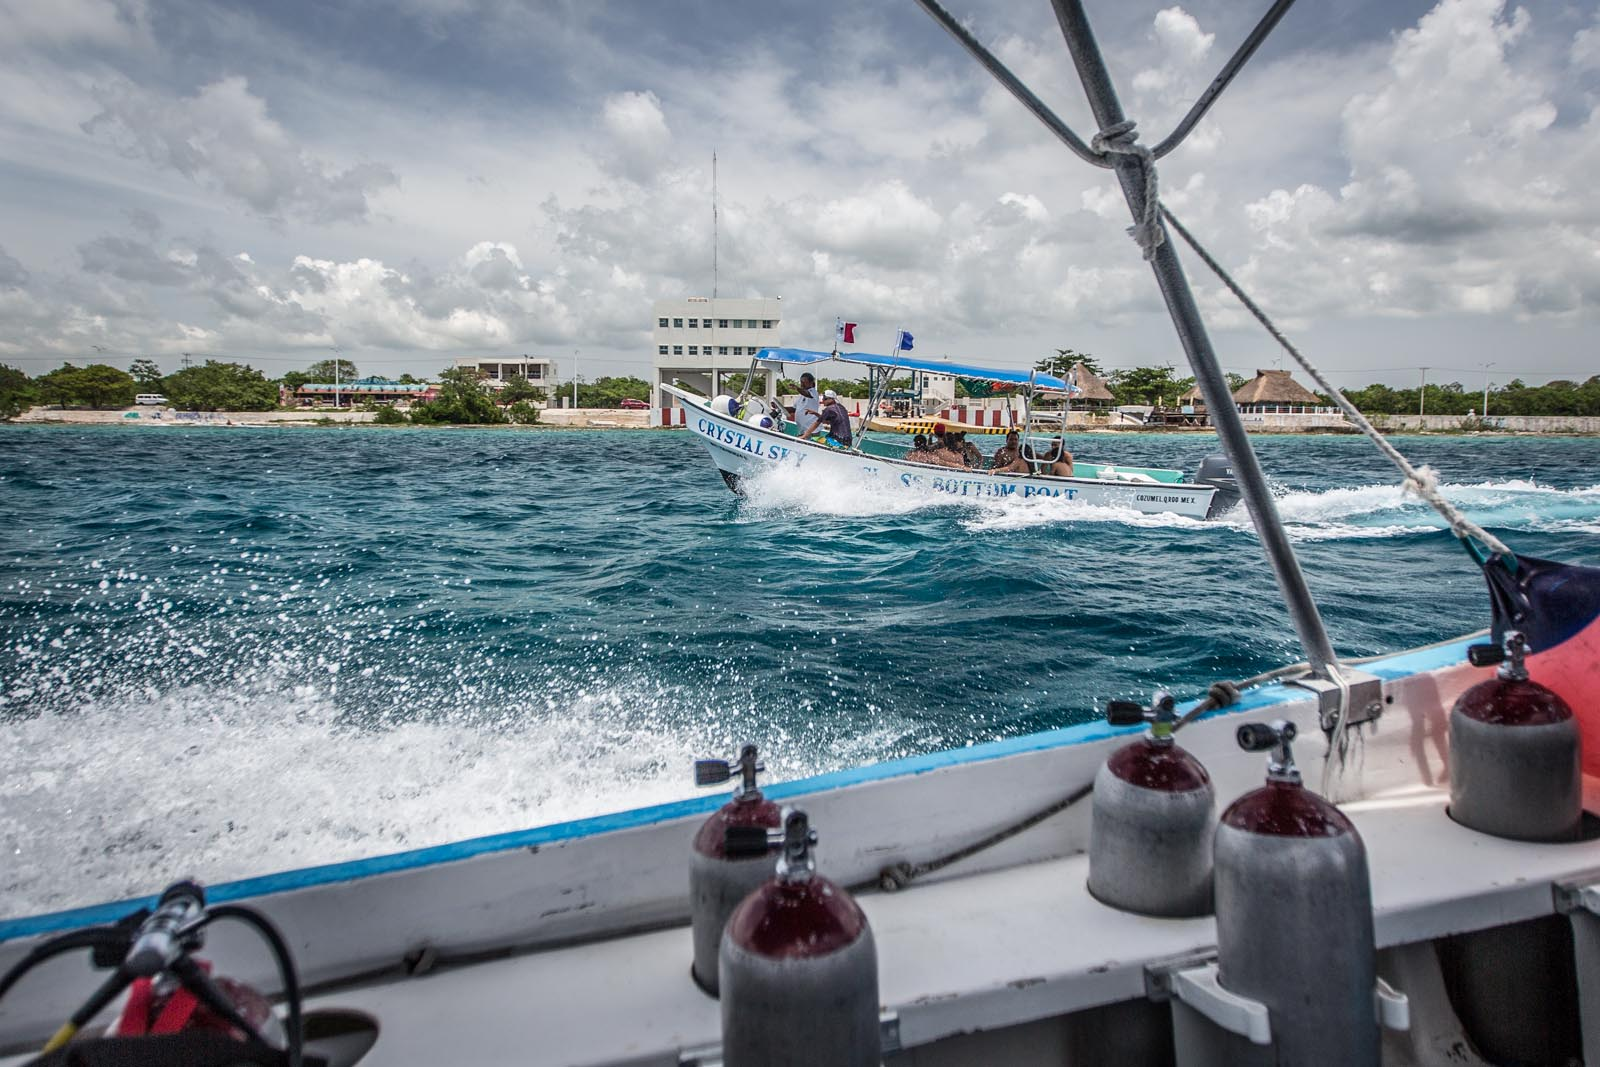 Racing the glass bottom boat back from the dive sites.